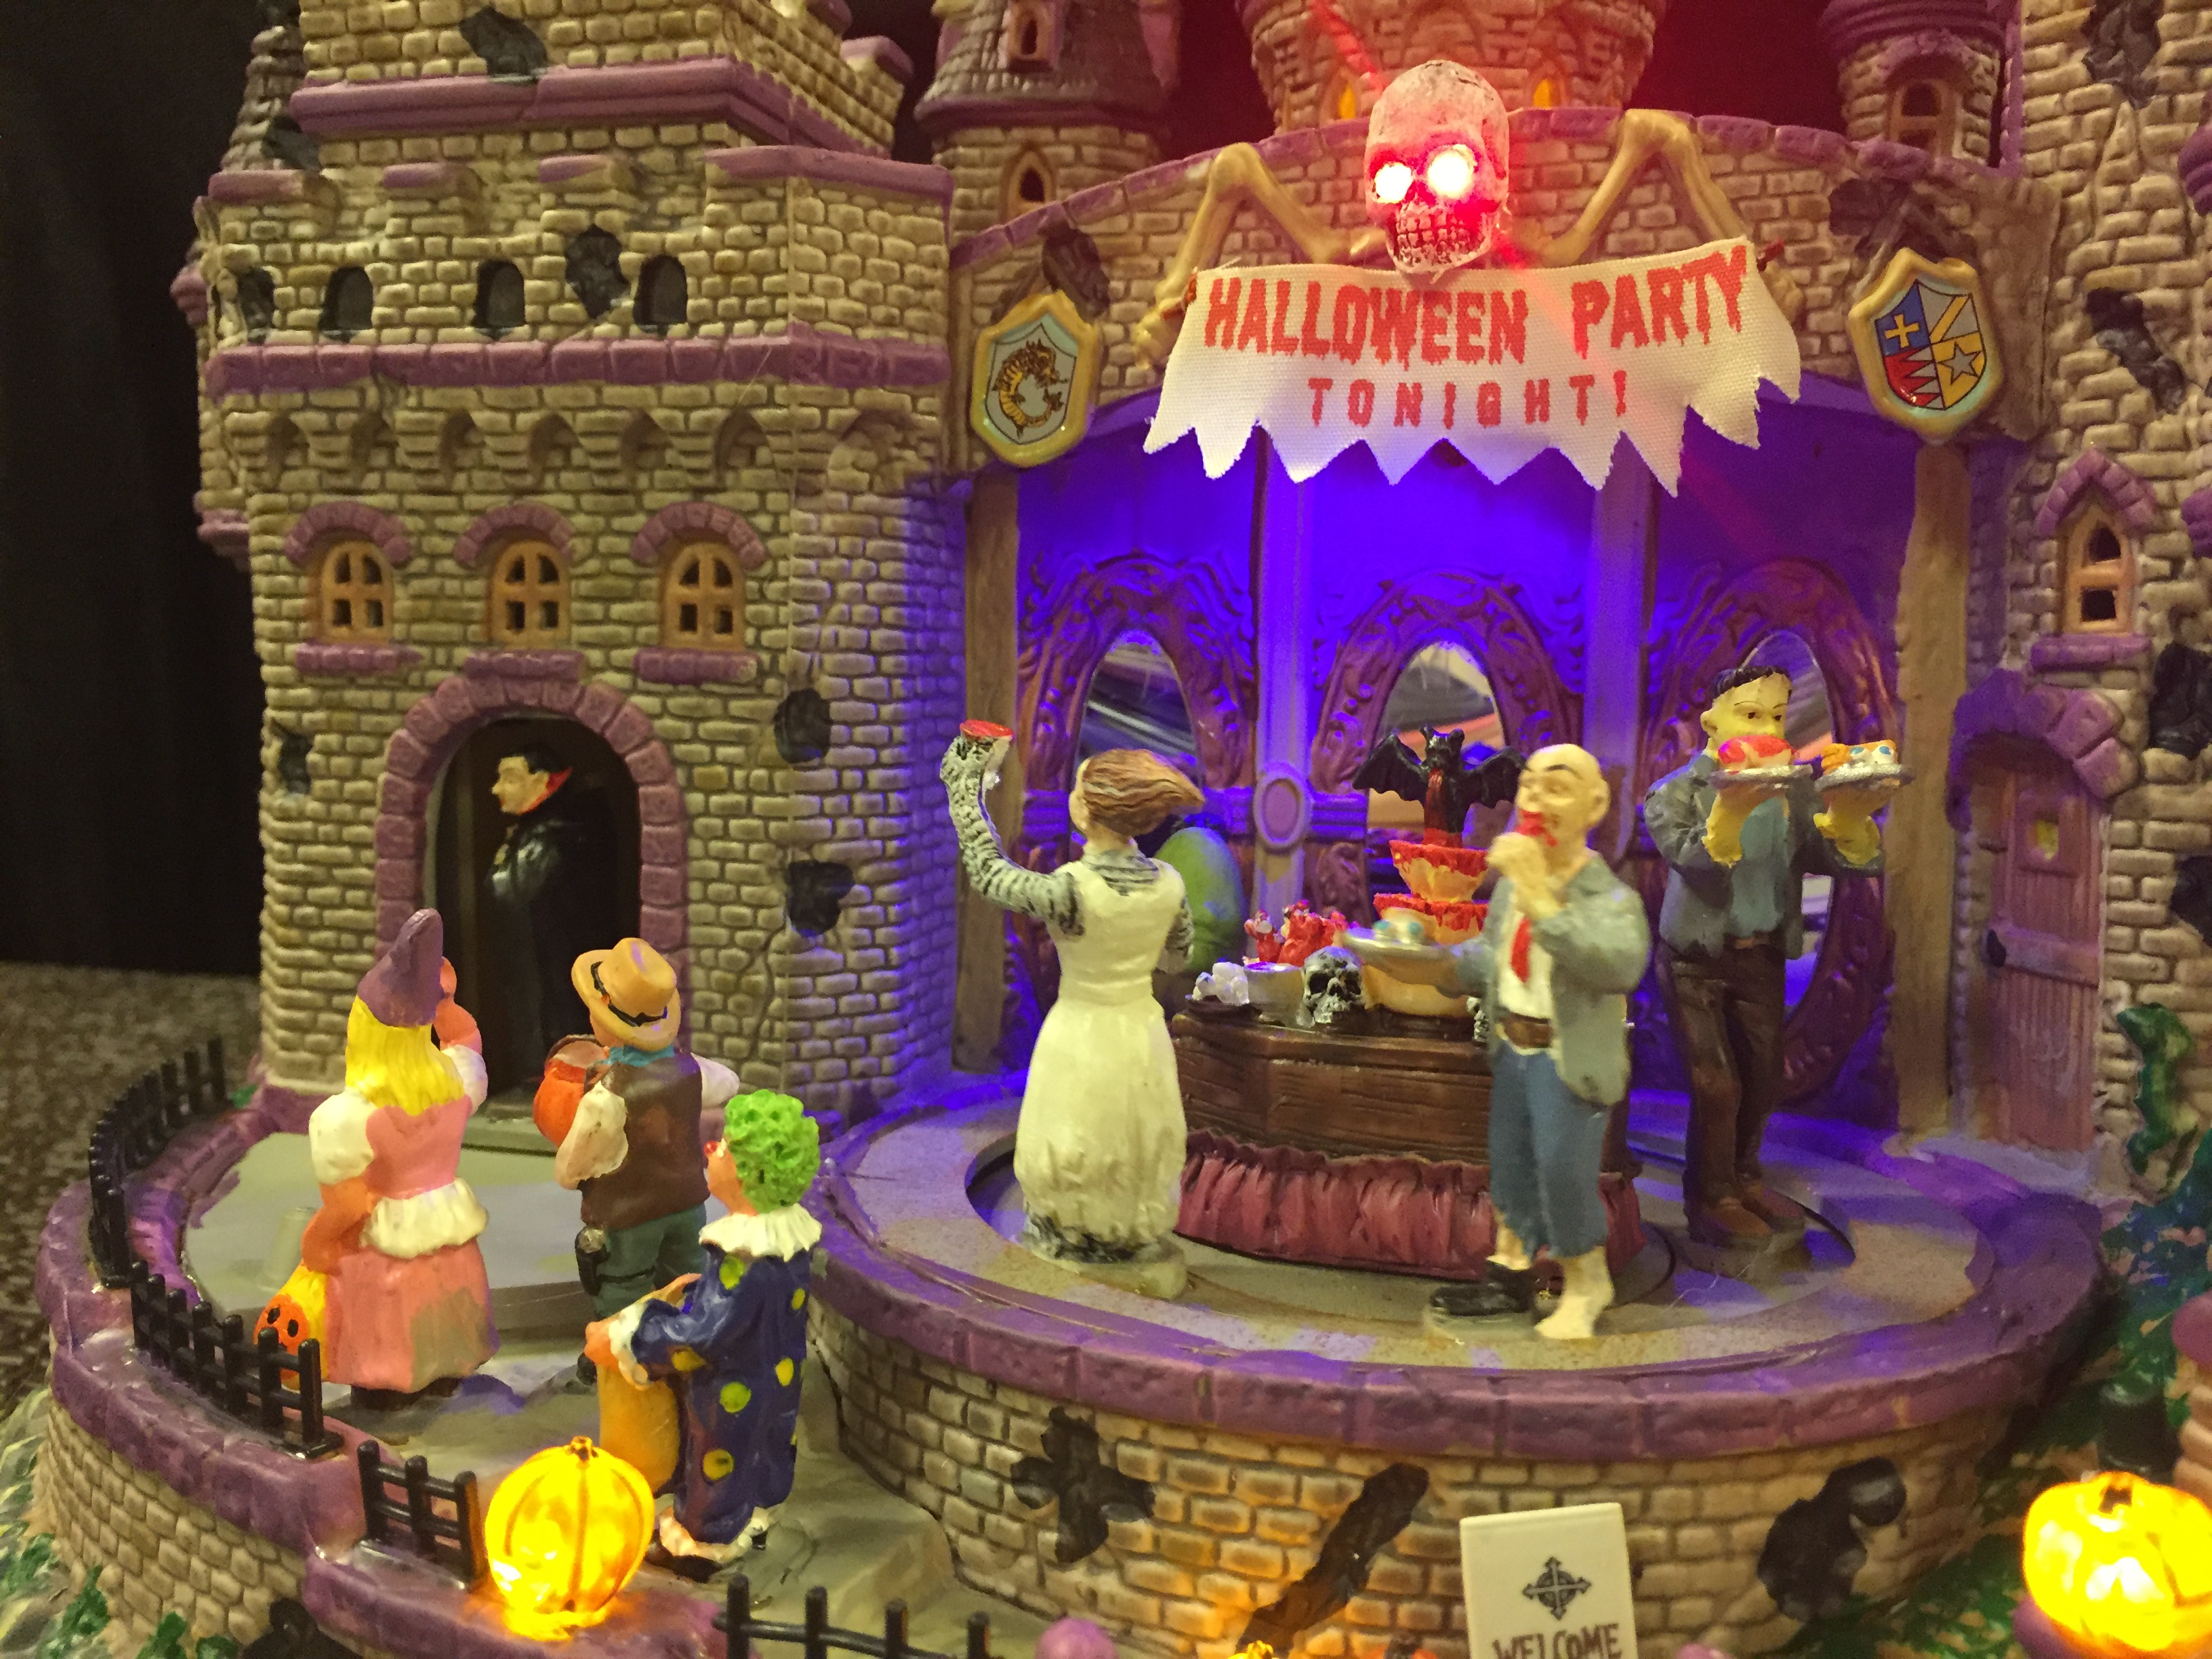 Review – Lemax Halloween Party – SpookyVillages.com